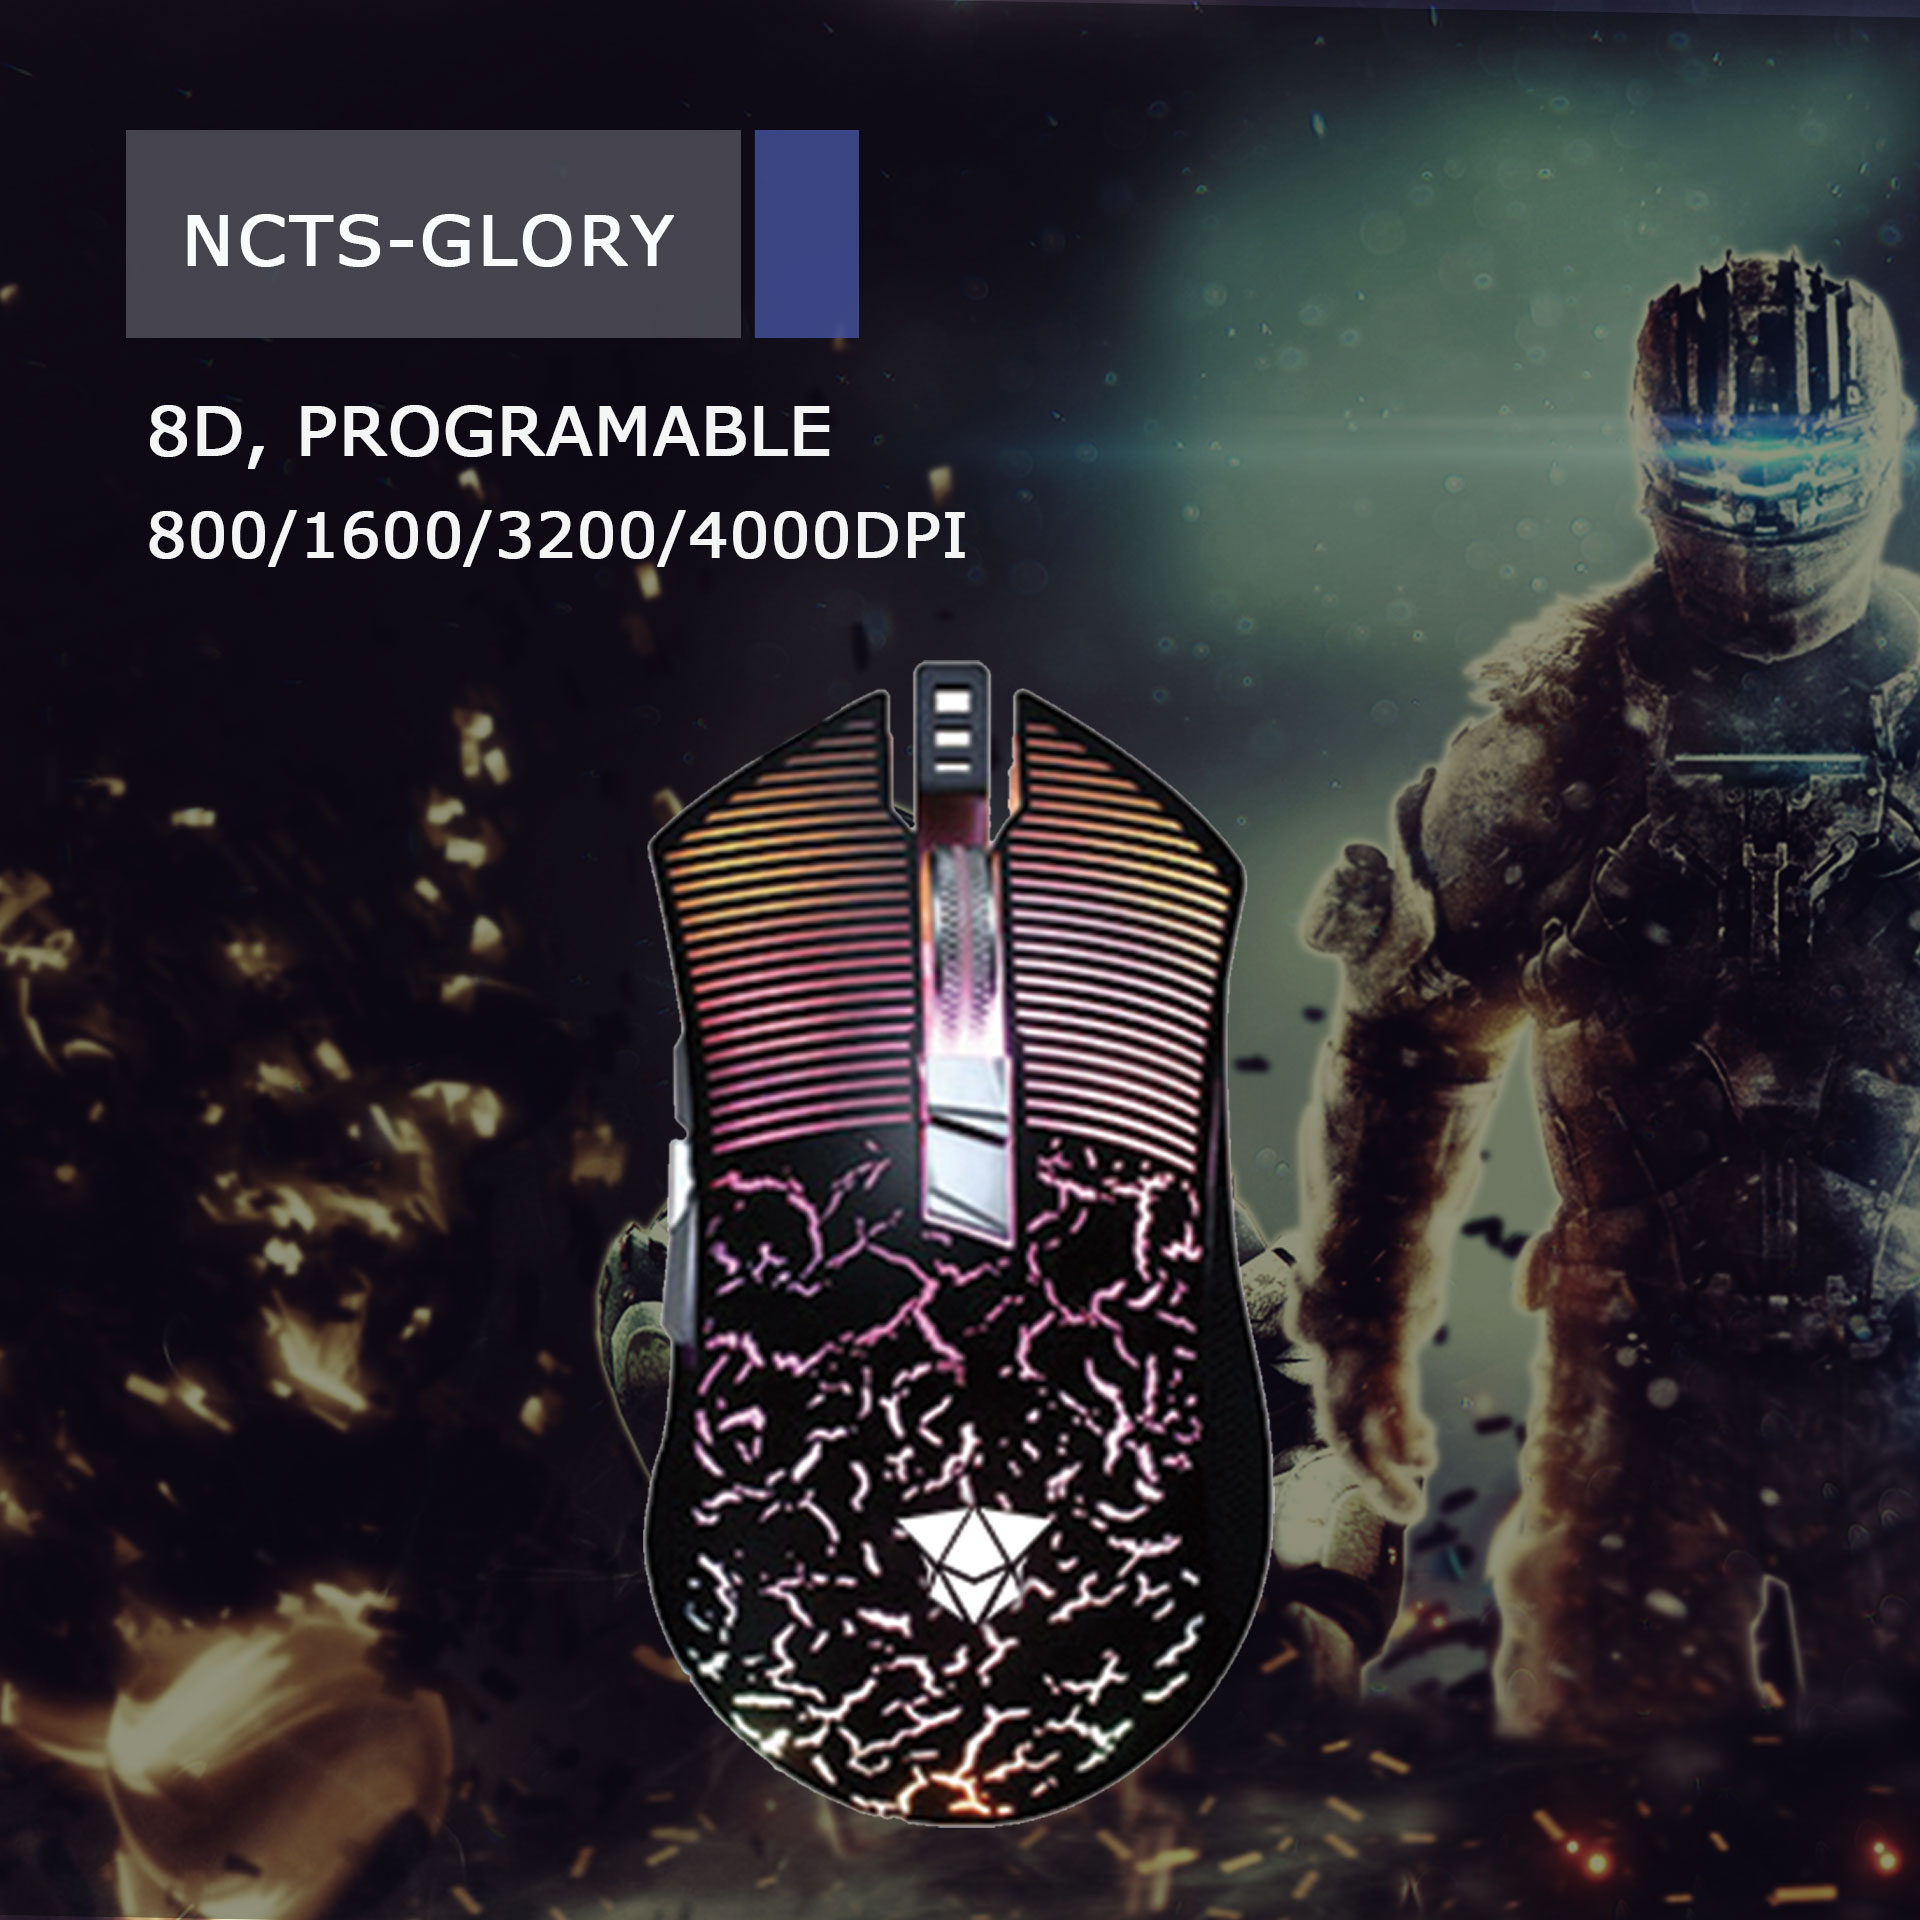 NCTS-GLORY